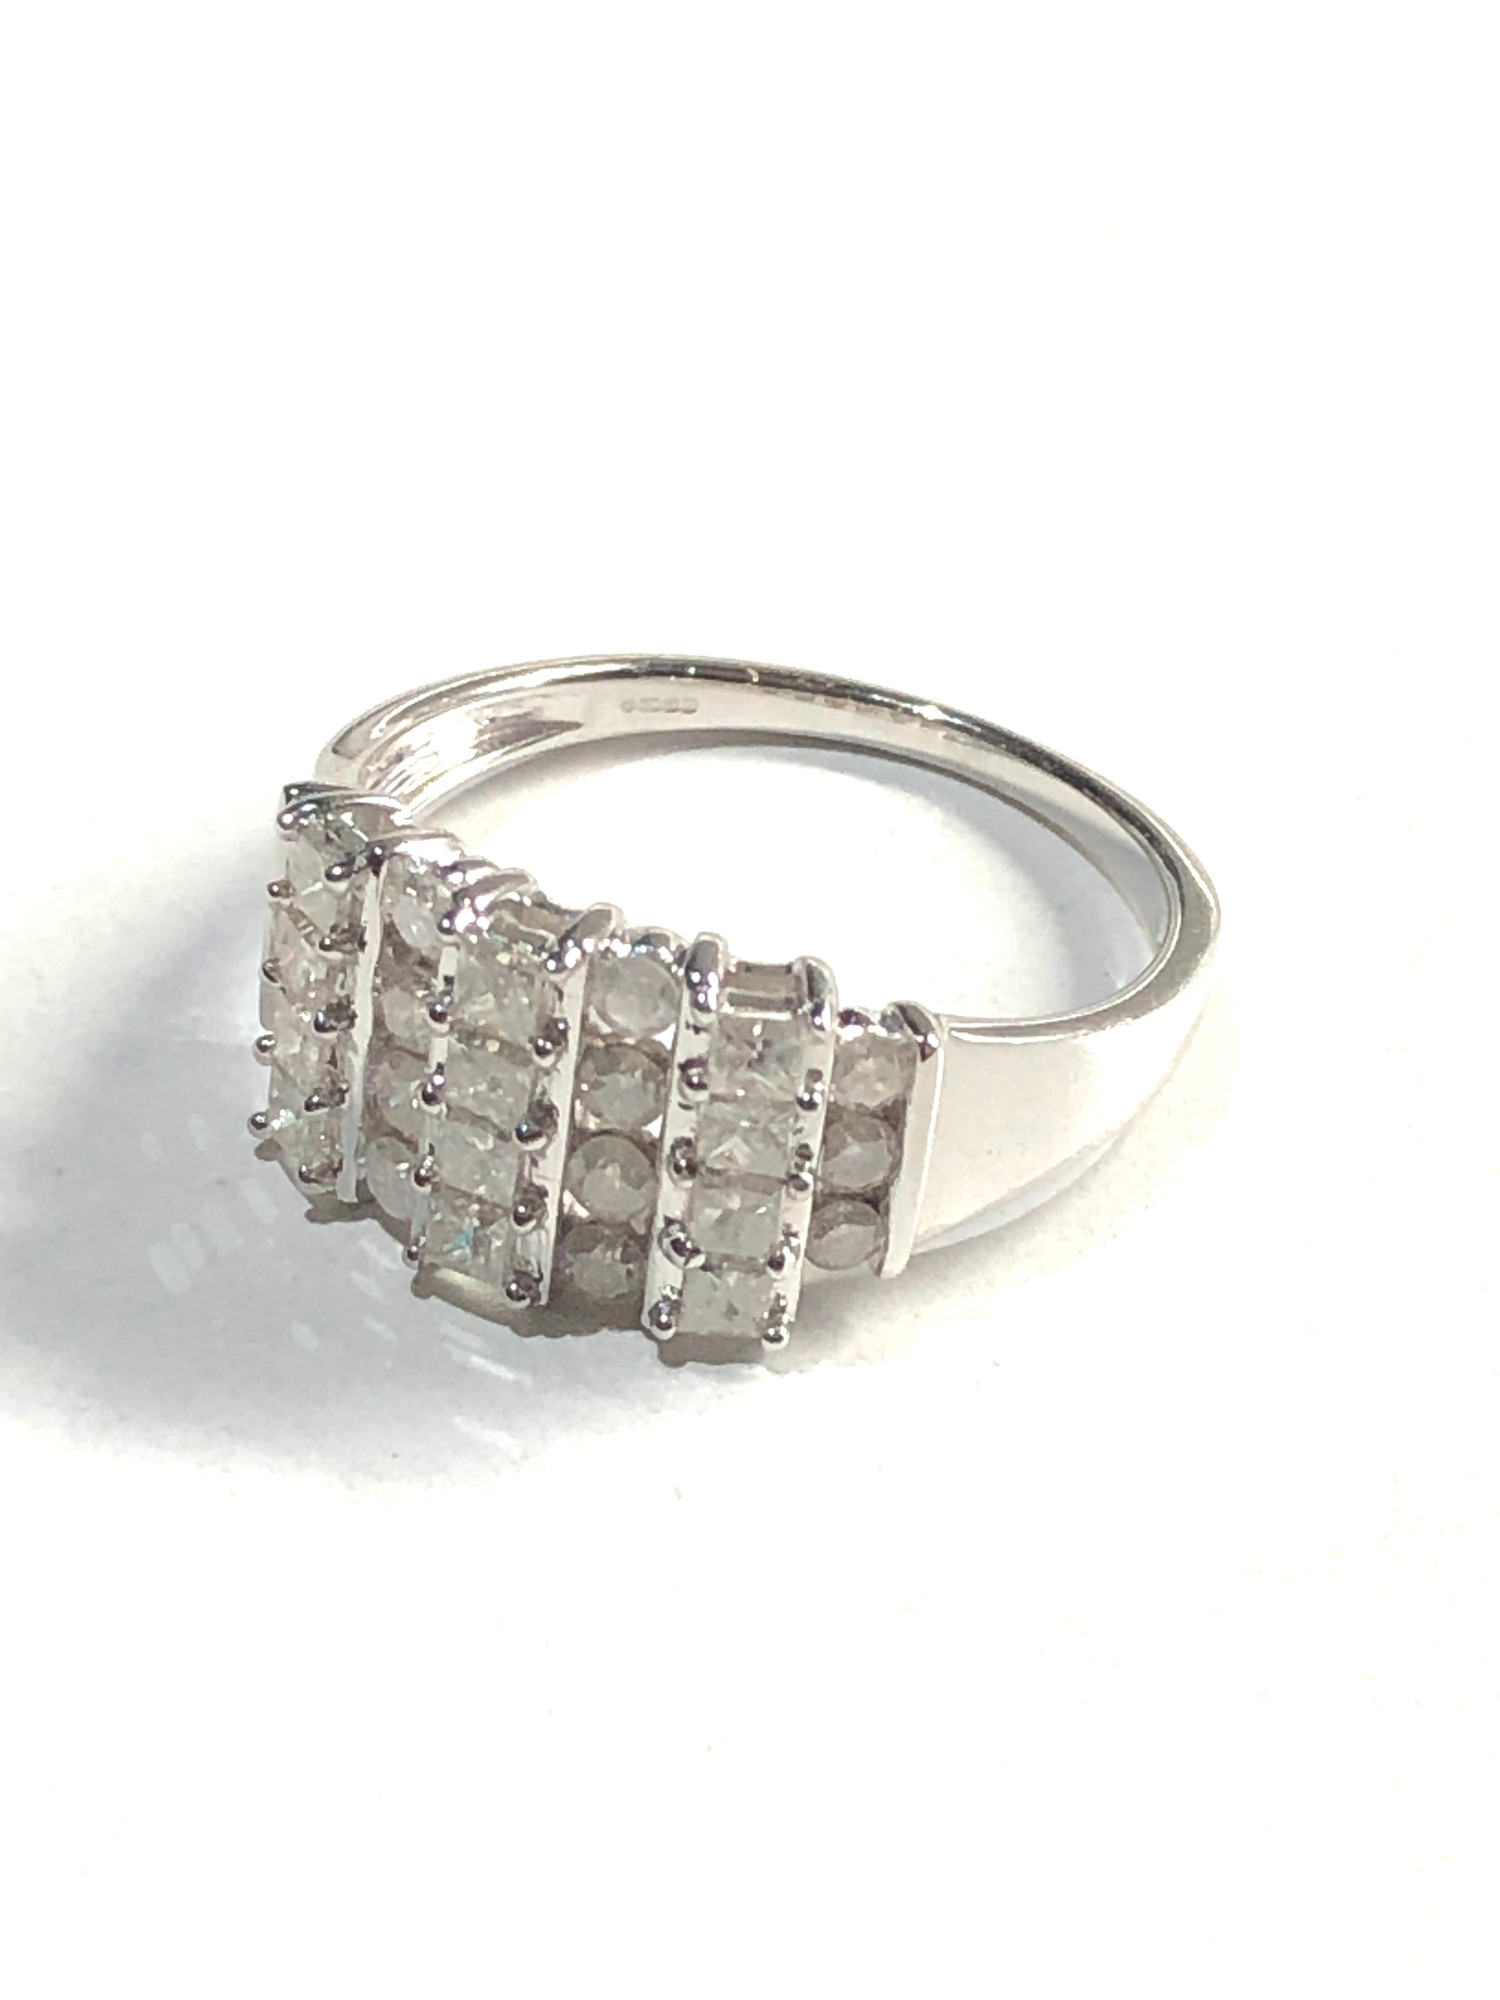 9ct white gold diamond cluster ring 3.7g - Image 2 of 3